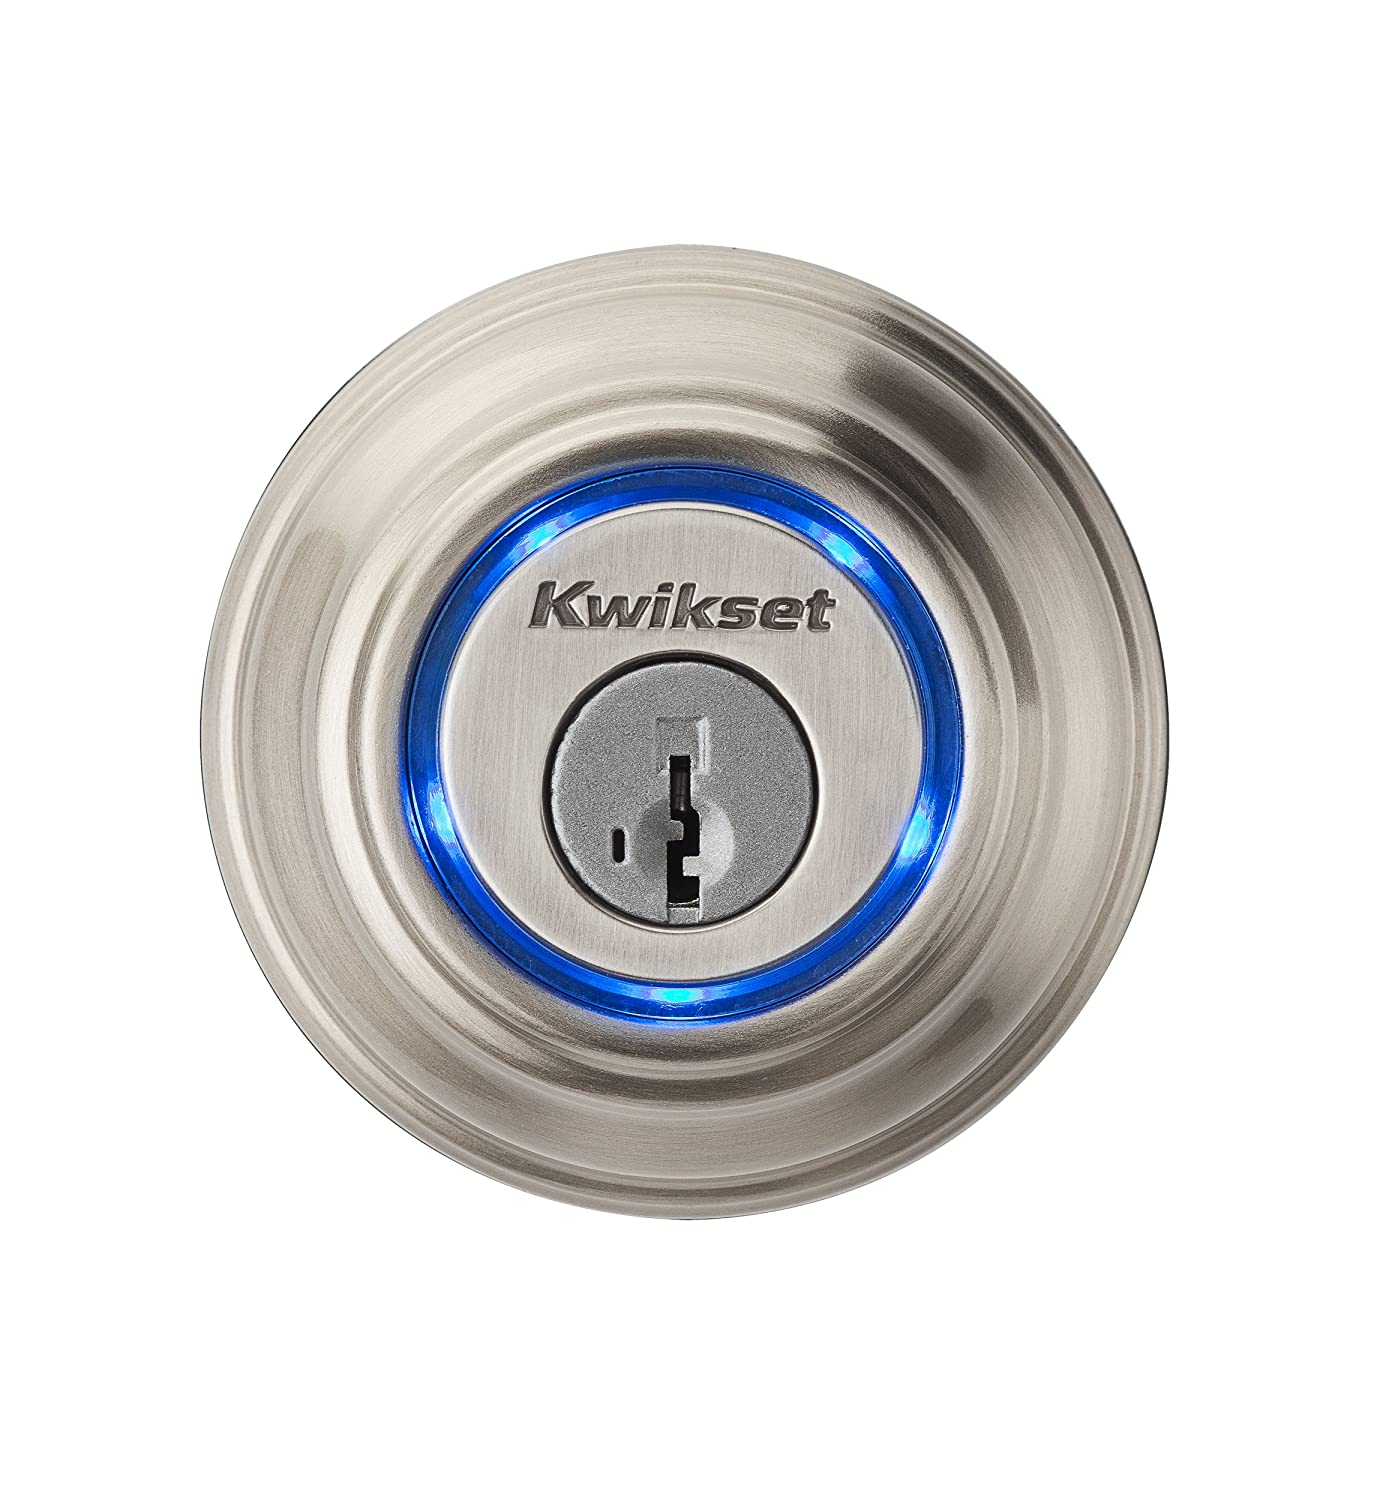 Kwikset 925 Kevo Single Cylinder Bluetooth Enabled Deadbolt for iPhone